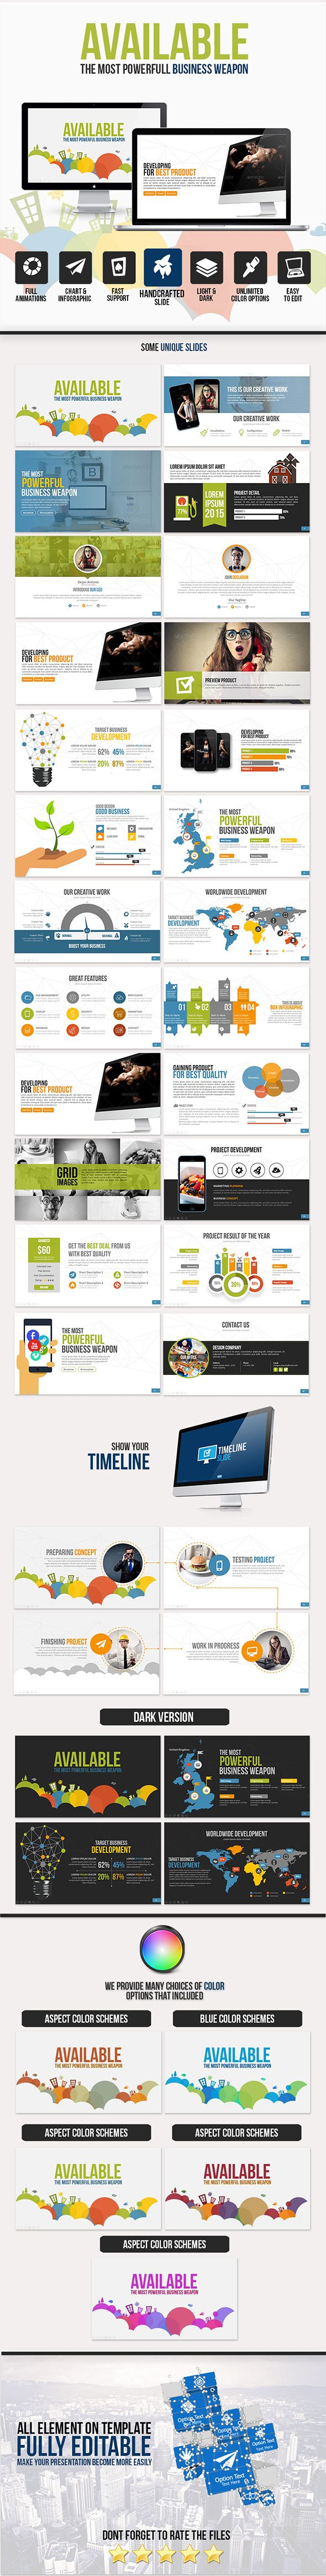 Available PowerPoint Template #powerpoint #presentation Download : https://graphicriver.net/item/available-powerpoint-template/10924156?s_rank=18?ref=BrandEarth